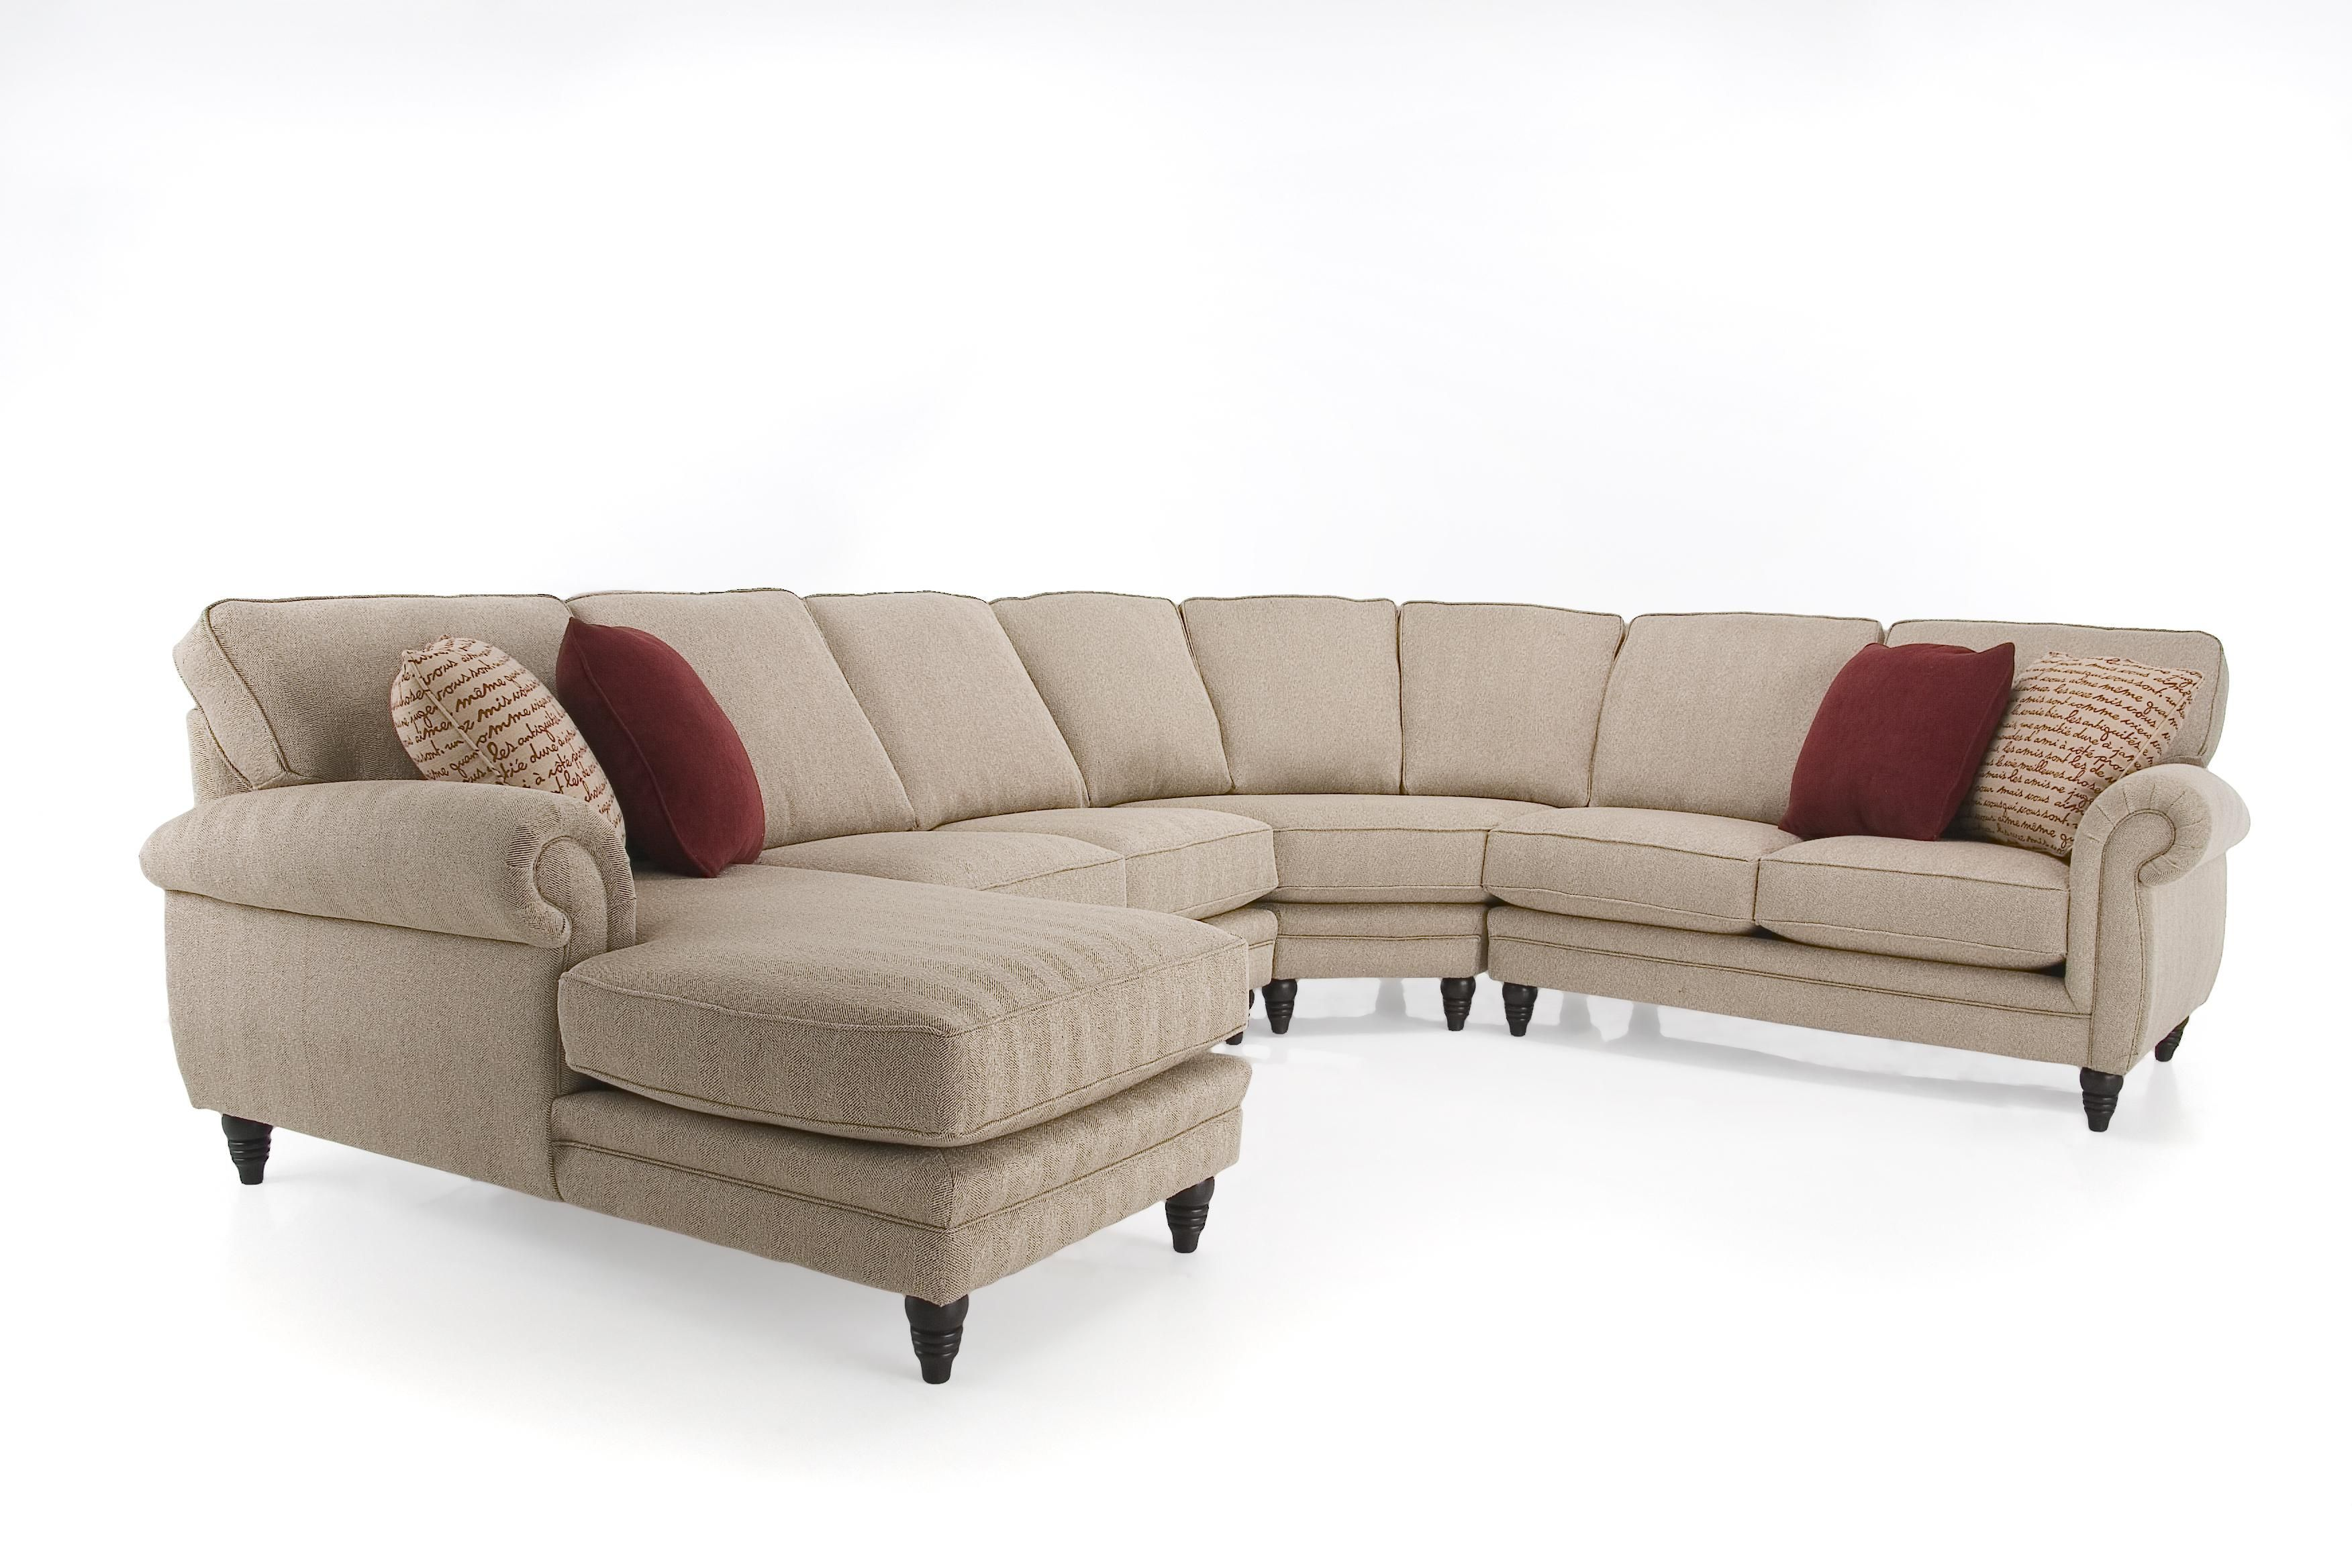 Lanza Two Piece Sectional Sofa with RHF Chaise by Palliser